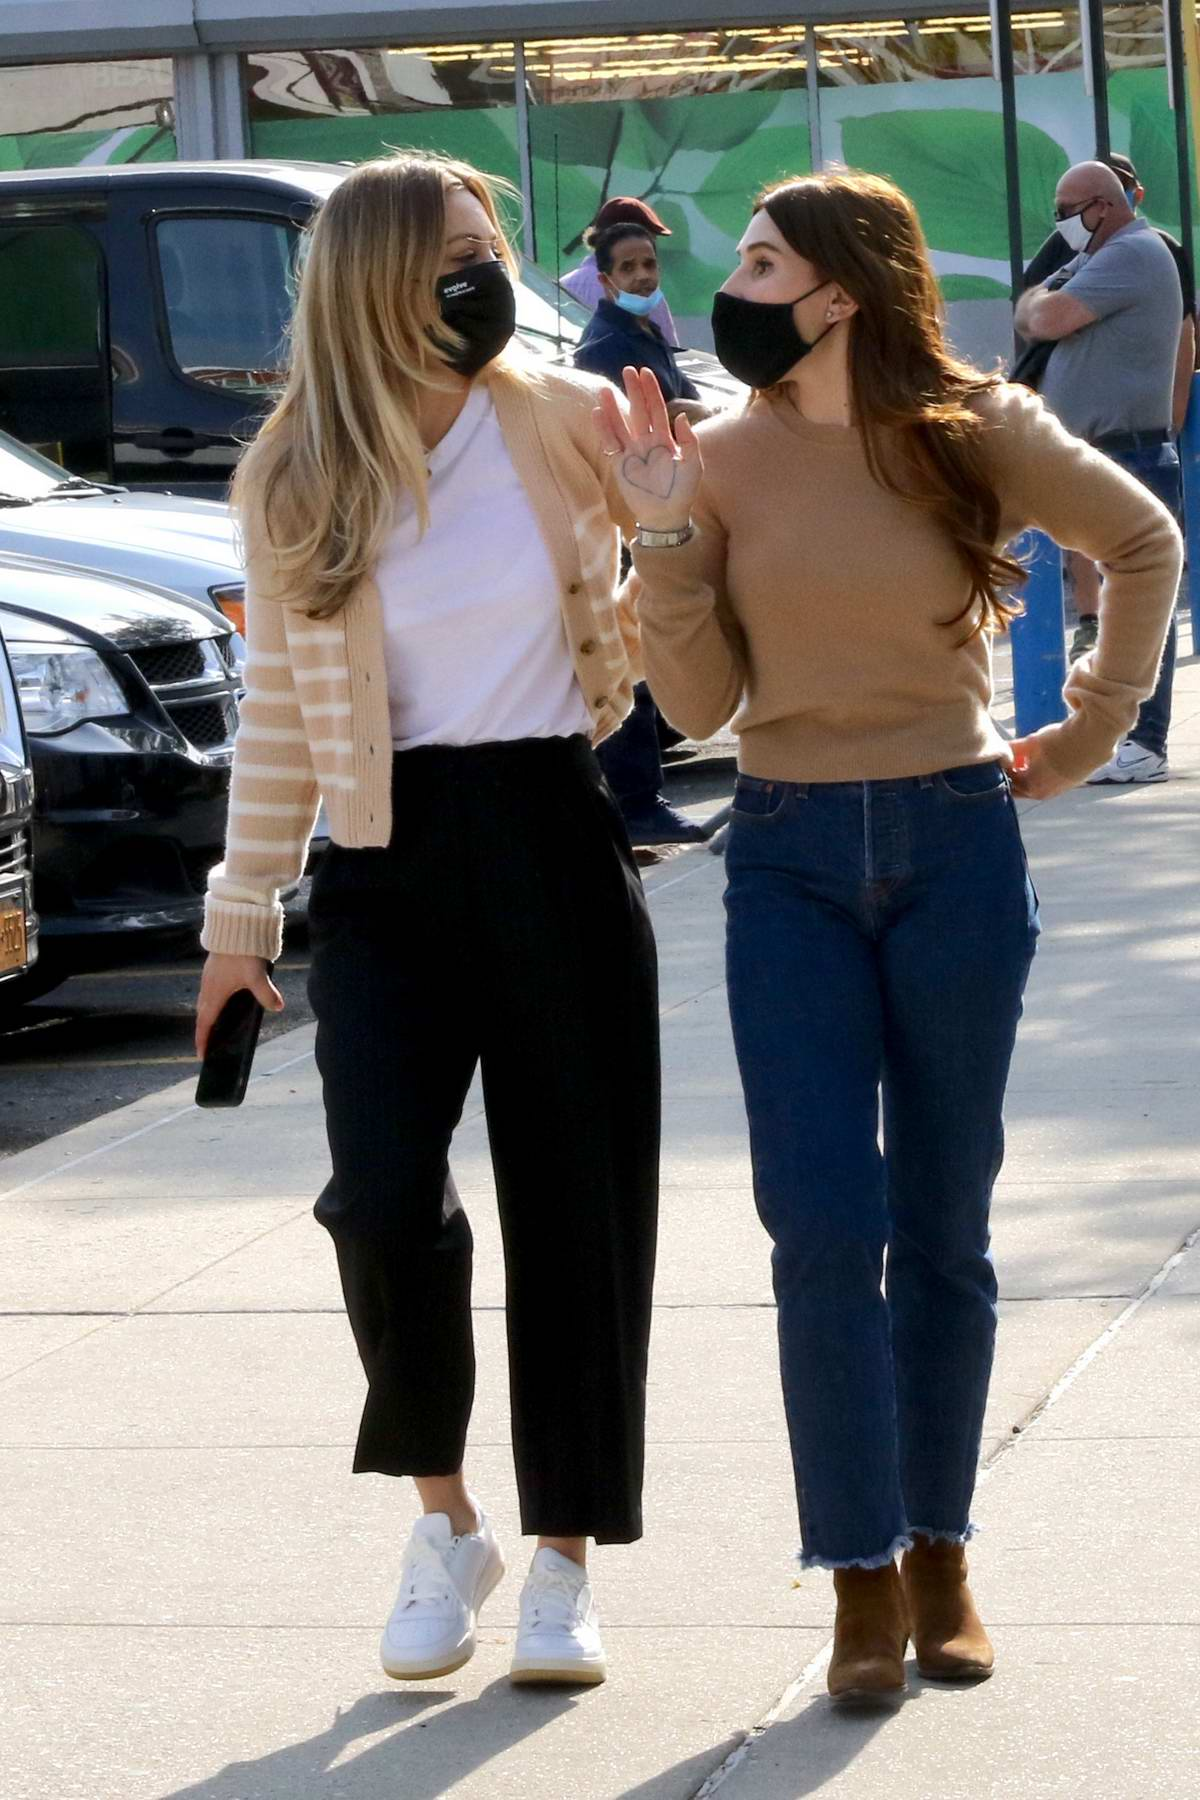 Kaley Cuoco and Zosia Mamet spend quality time on their last day filming at 'The Flight Attendant' set in Queens, New York